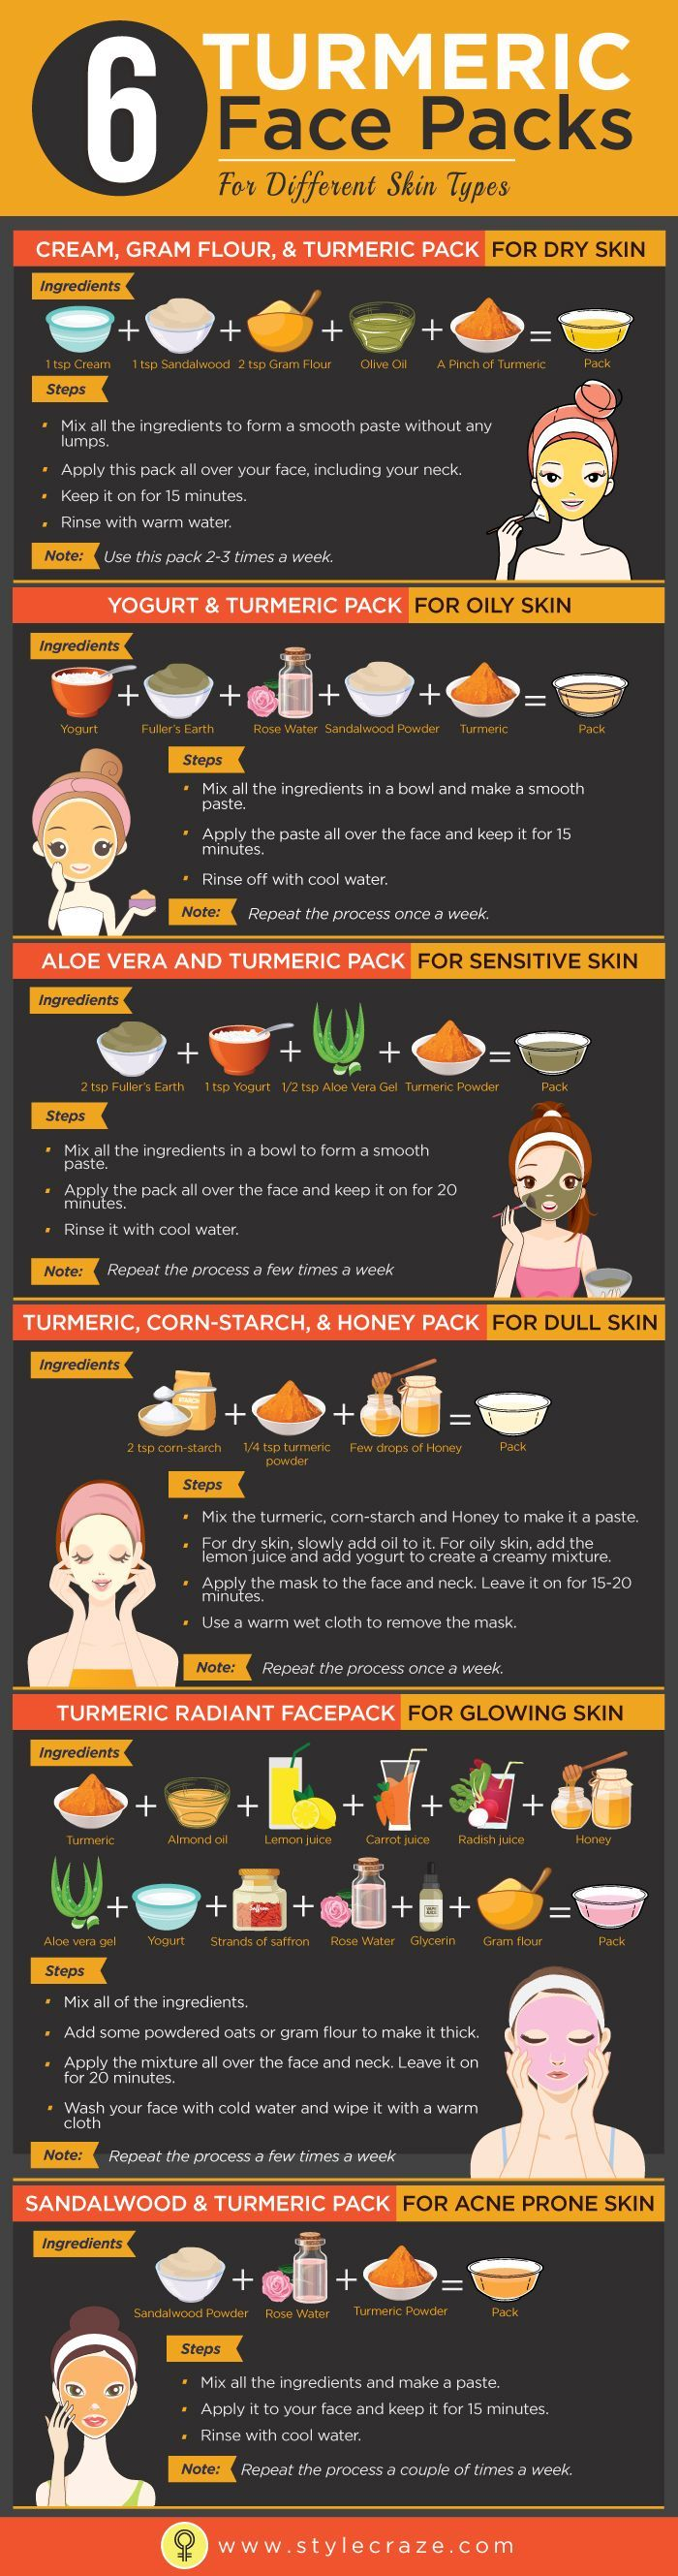 6 Turmeric Face Packs For Different Skin Types #Infographic #SkinCare